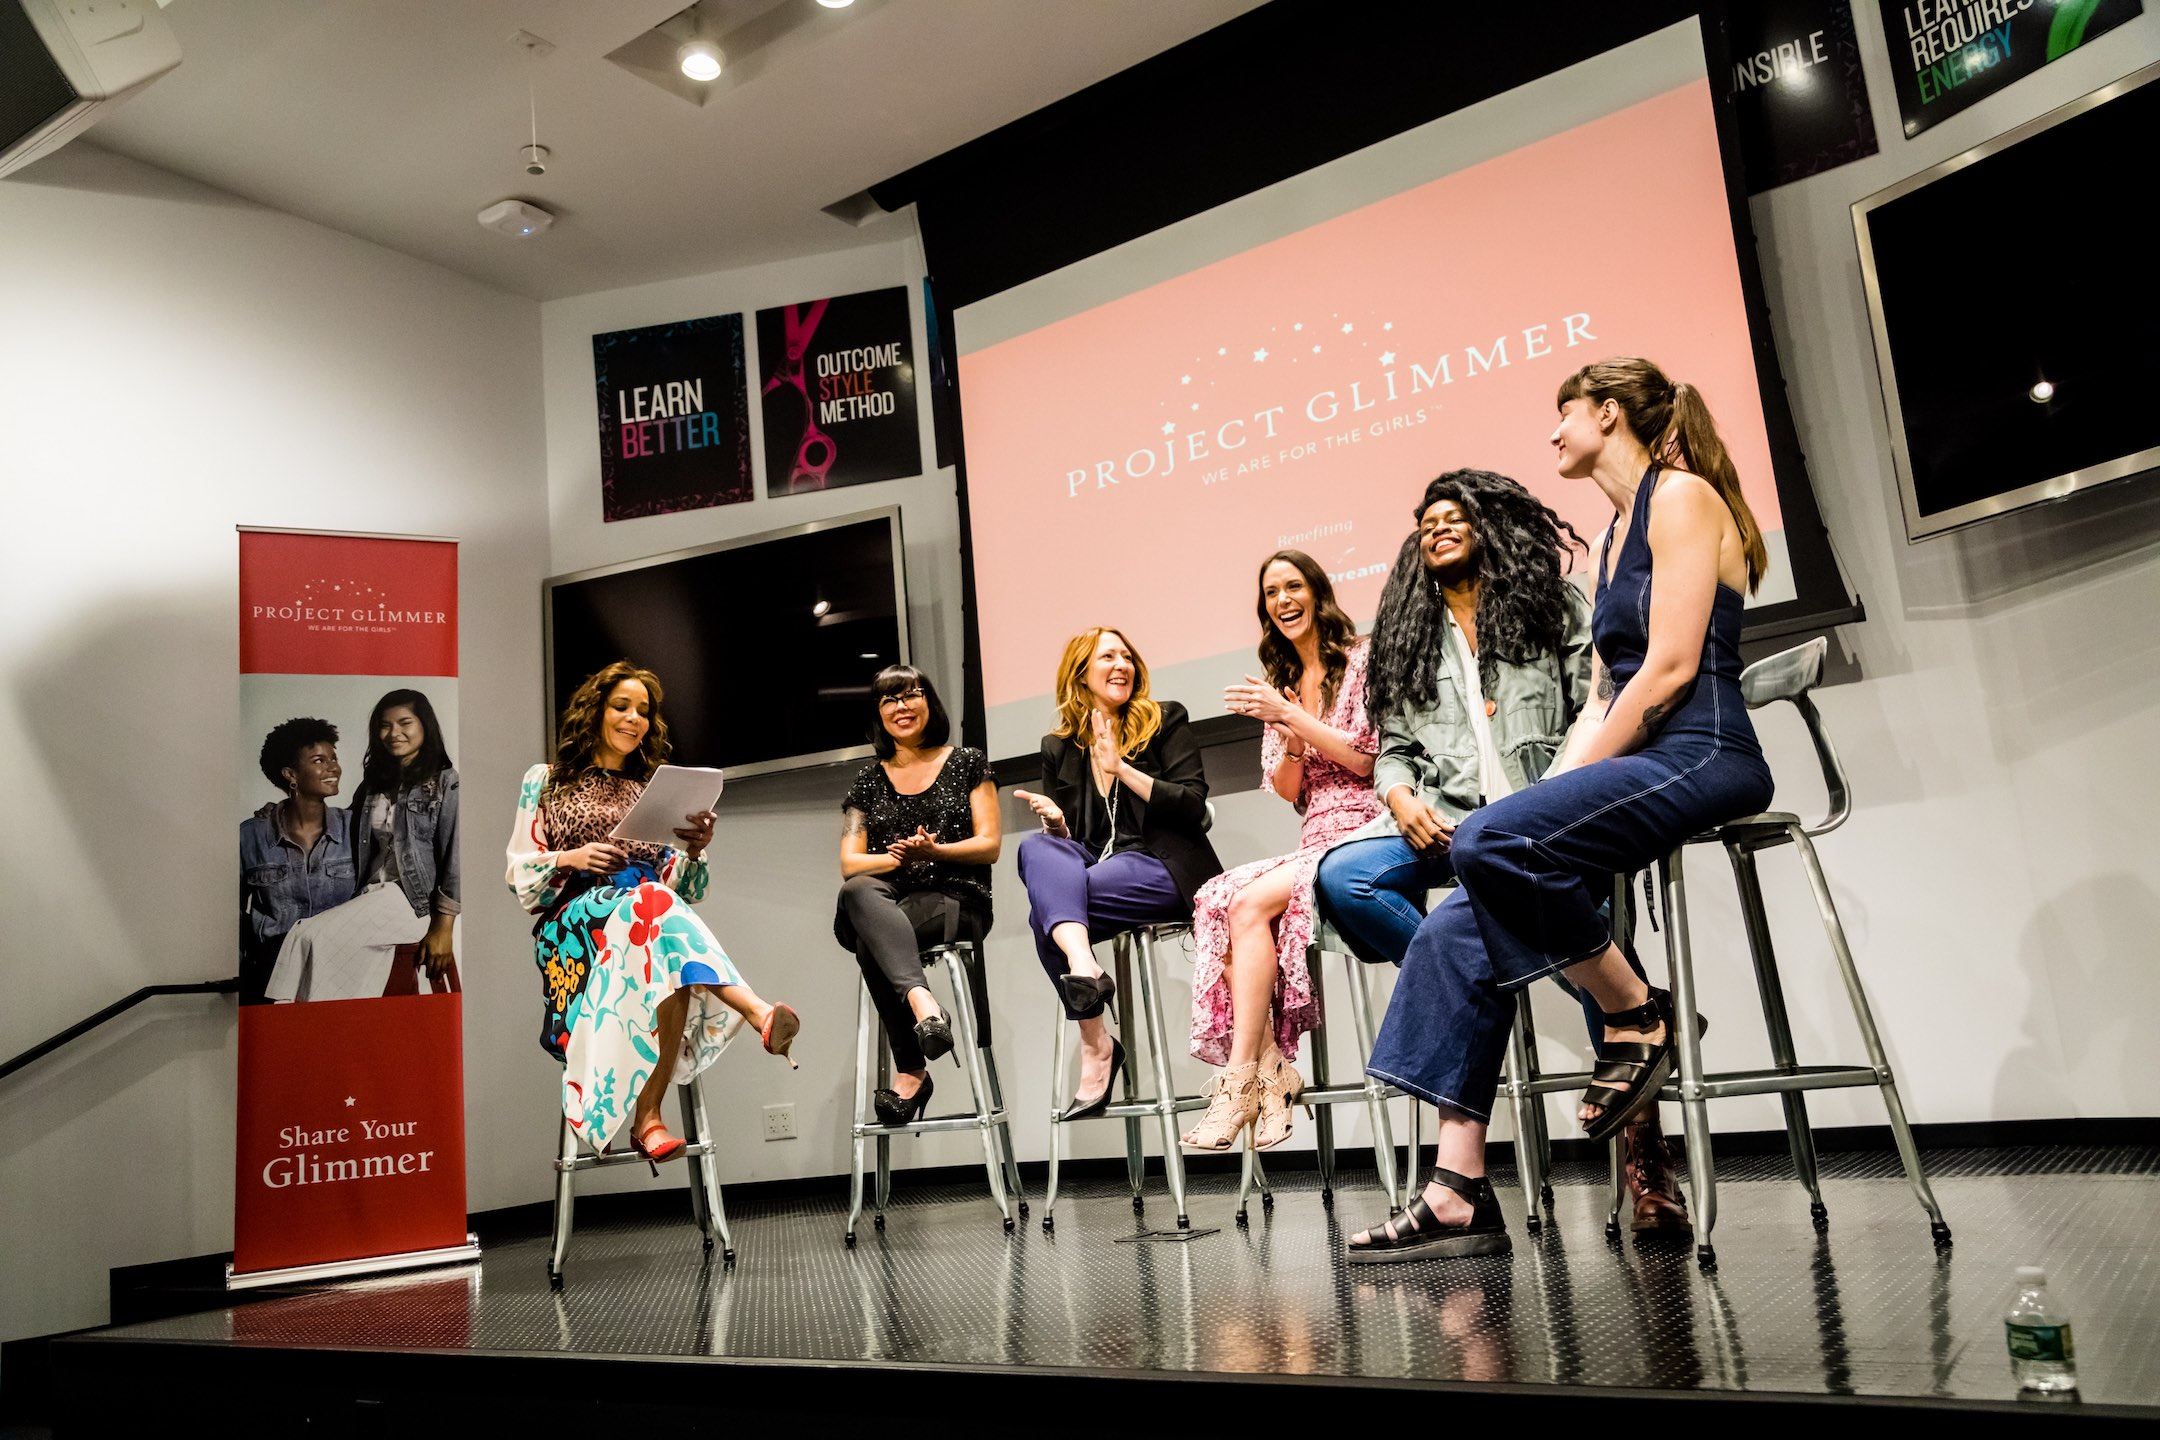 The View's Sunny Hostin moderates a panel discussion at a Day of Empowerment at Redken NYC.